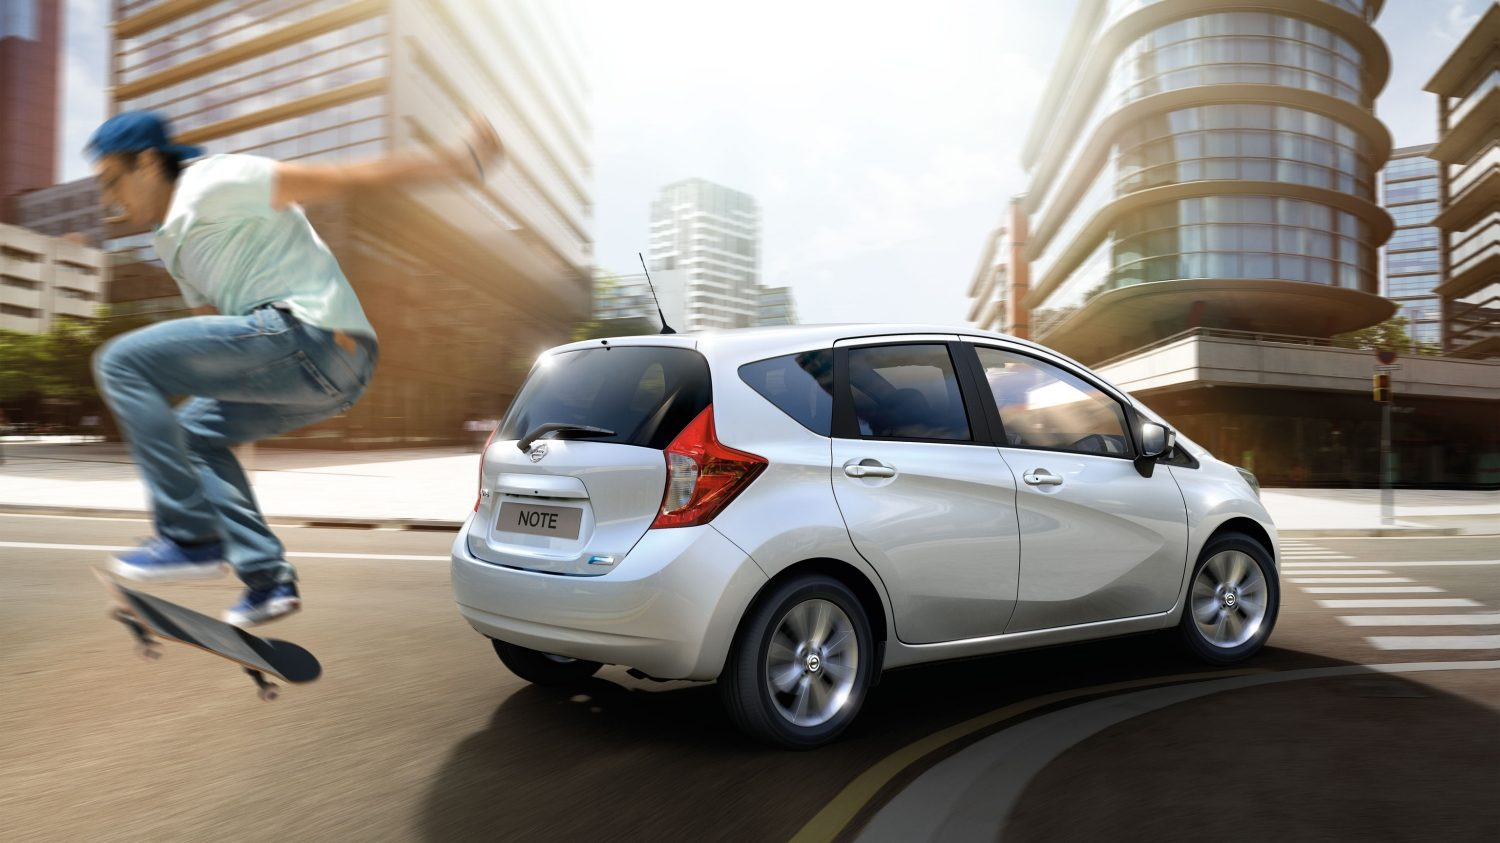 Nissan NOTE Arctic white - City car